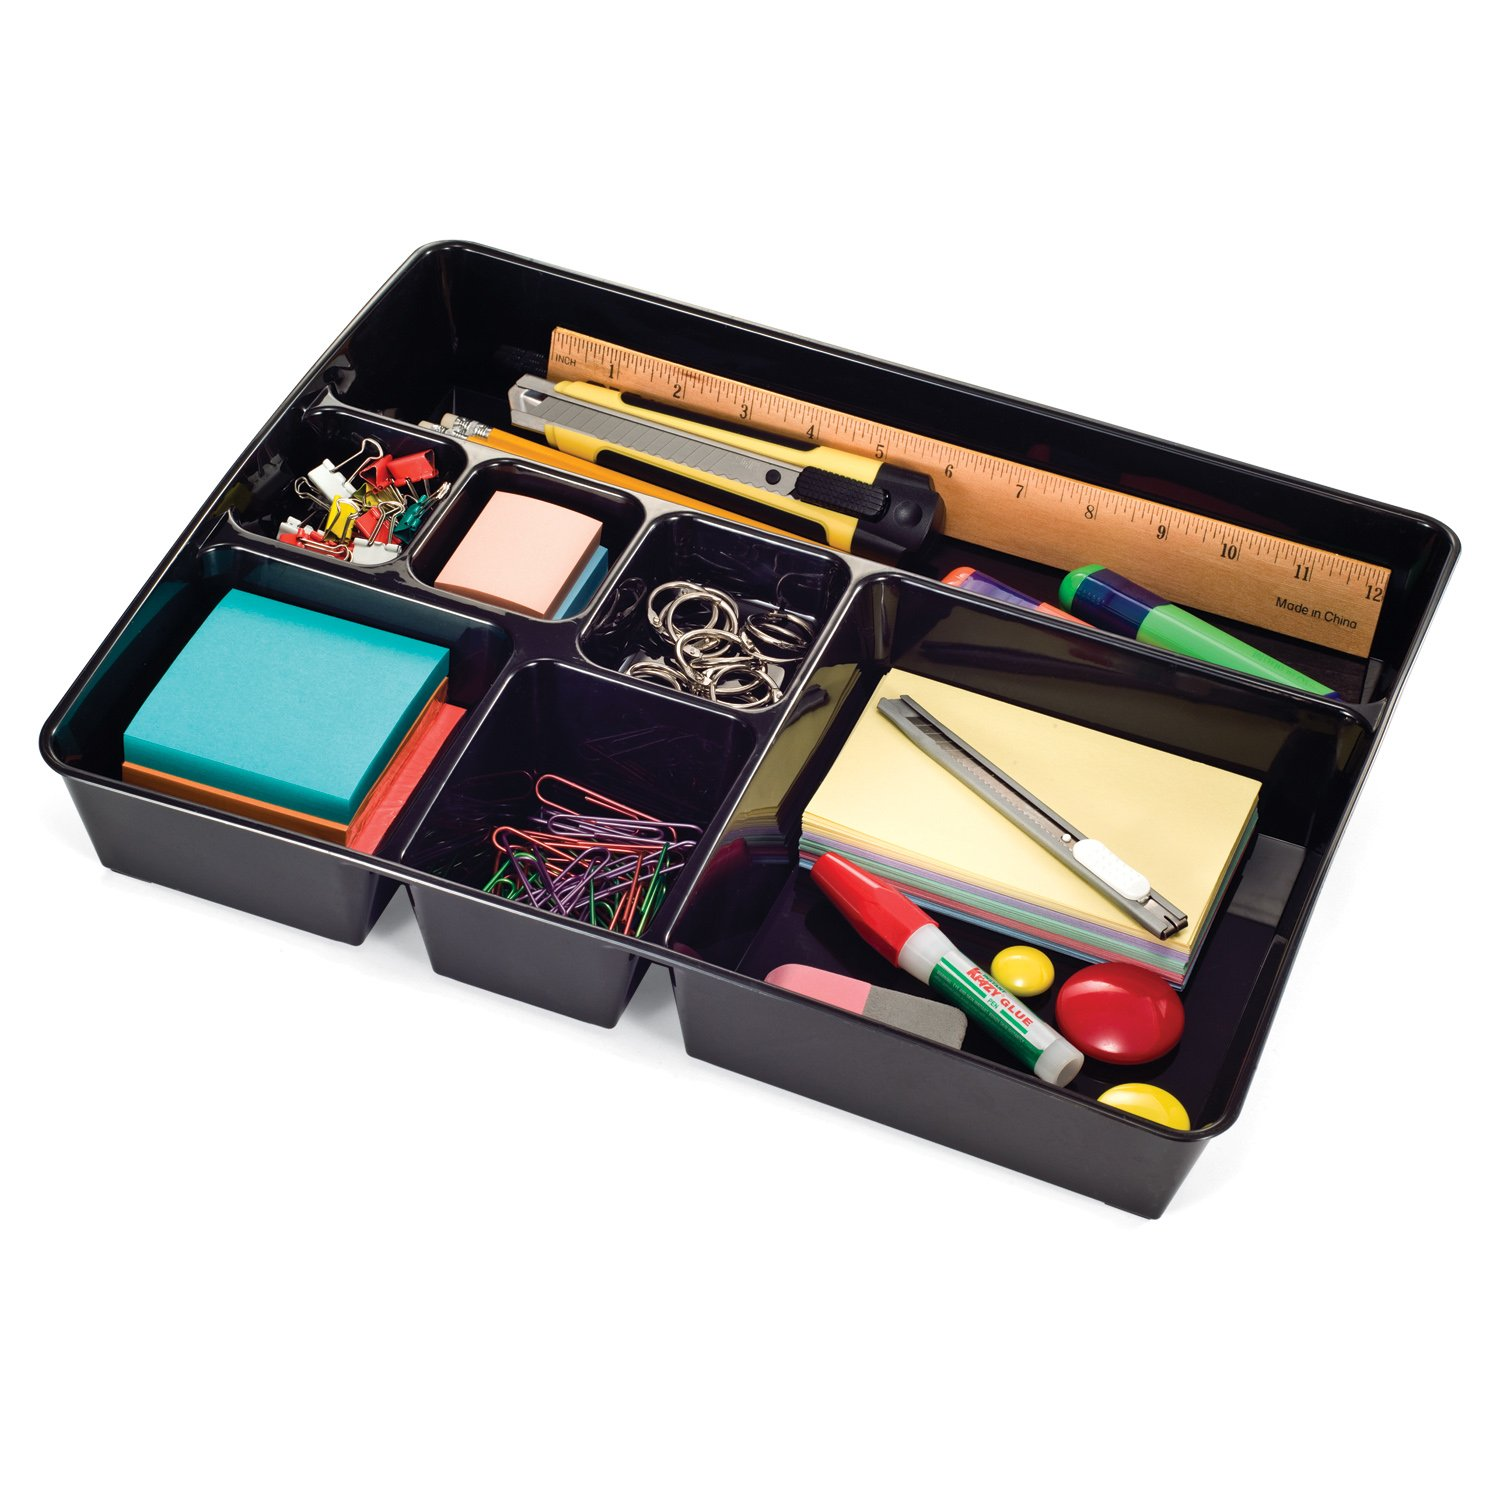 Bon Amazon.com : Officemate OIC Achieva Deep Drawer Tray, Recycled, Black  (26241) : Office Desk Organizers : Office Products